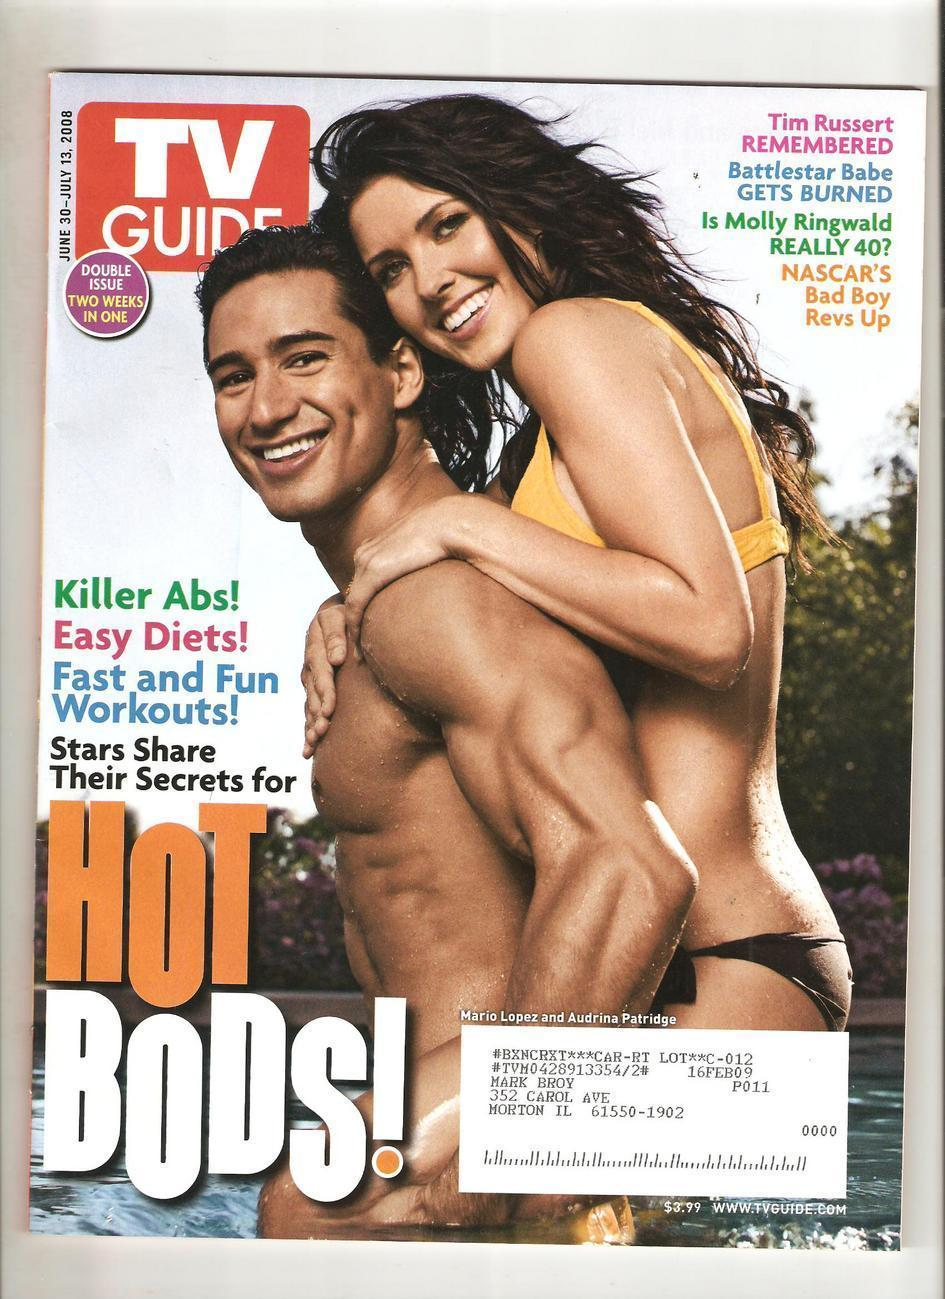 Hot Bods - TV Guide Magazine (June 30, 2000)